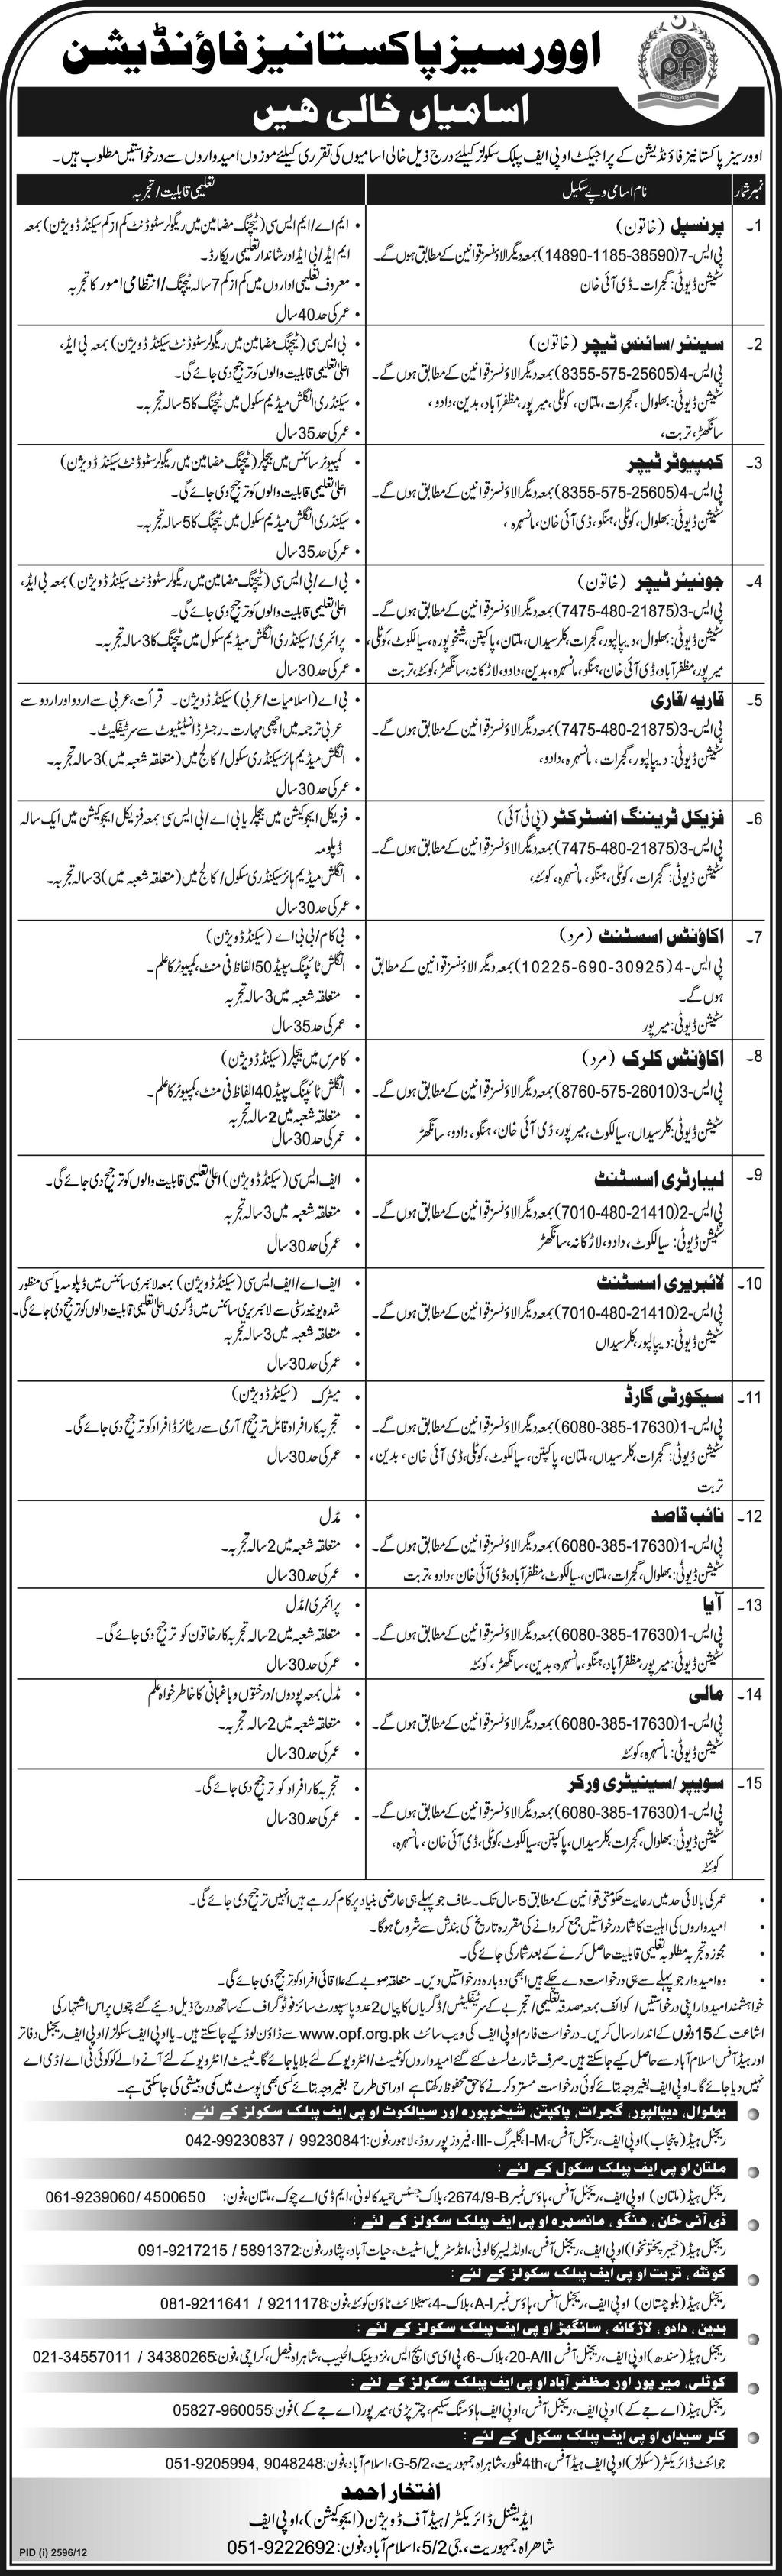 Ad_Express_Job_20121209_010 Opf Job Form Download on f 8 islamabad, school islamabad party, school quetta, colony islamabd, airport logo, space shuttle, college islamabad girls,